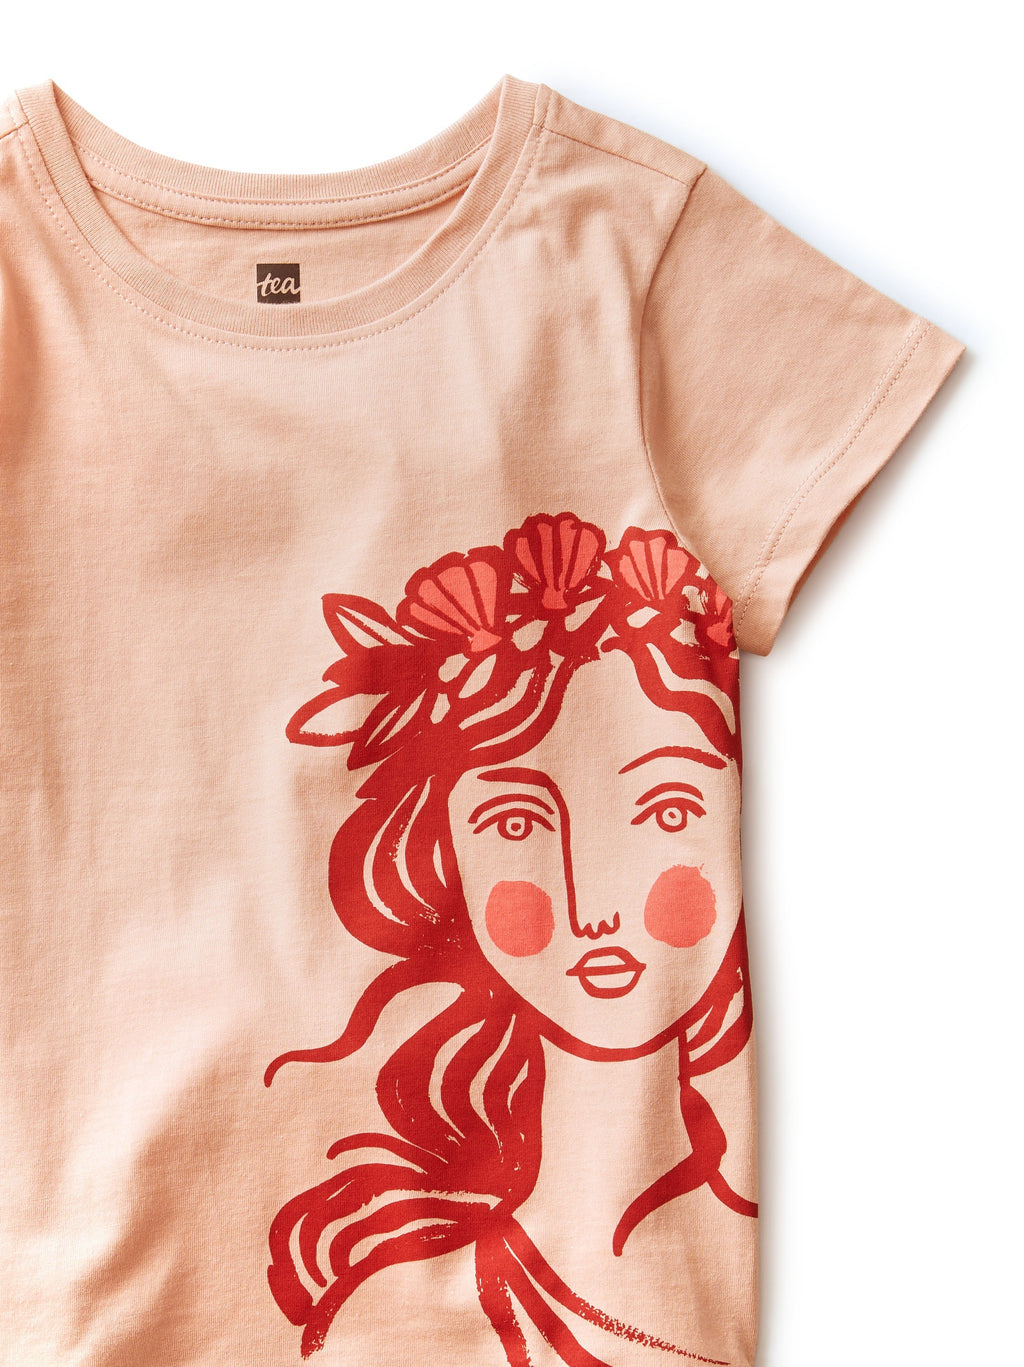 Mermaid Graphic Tee